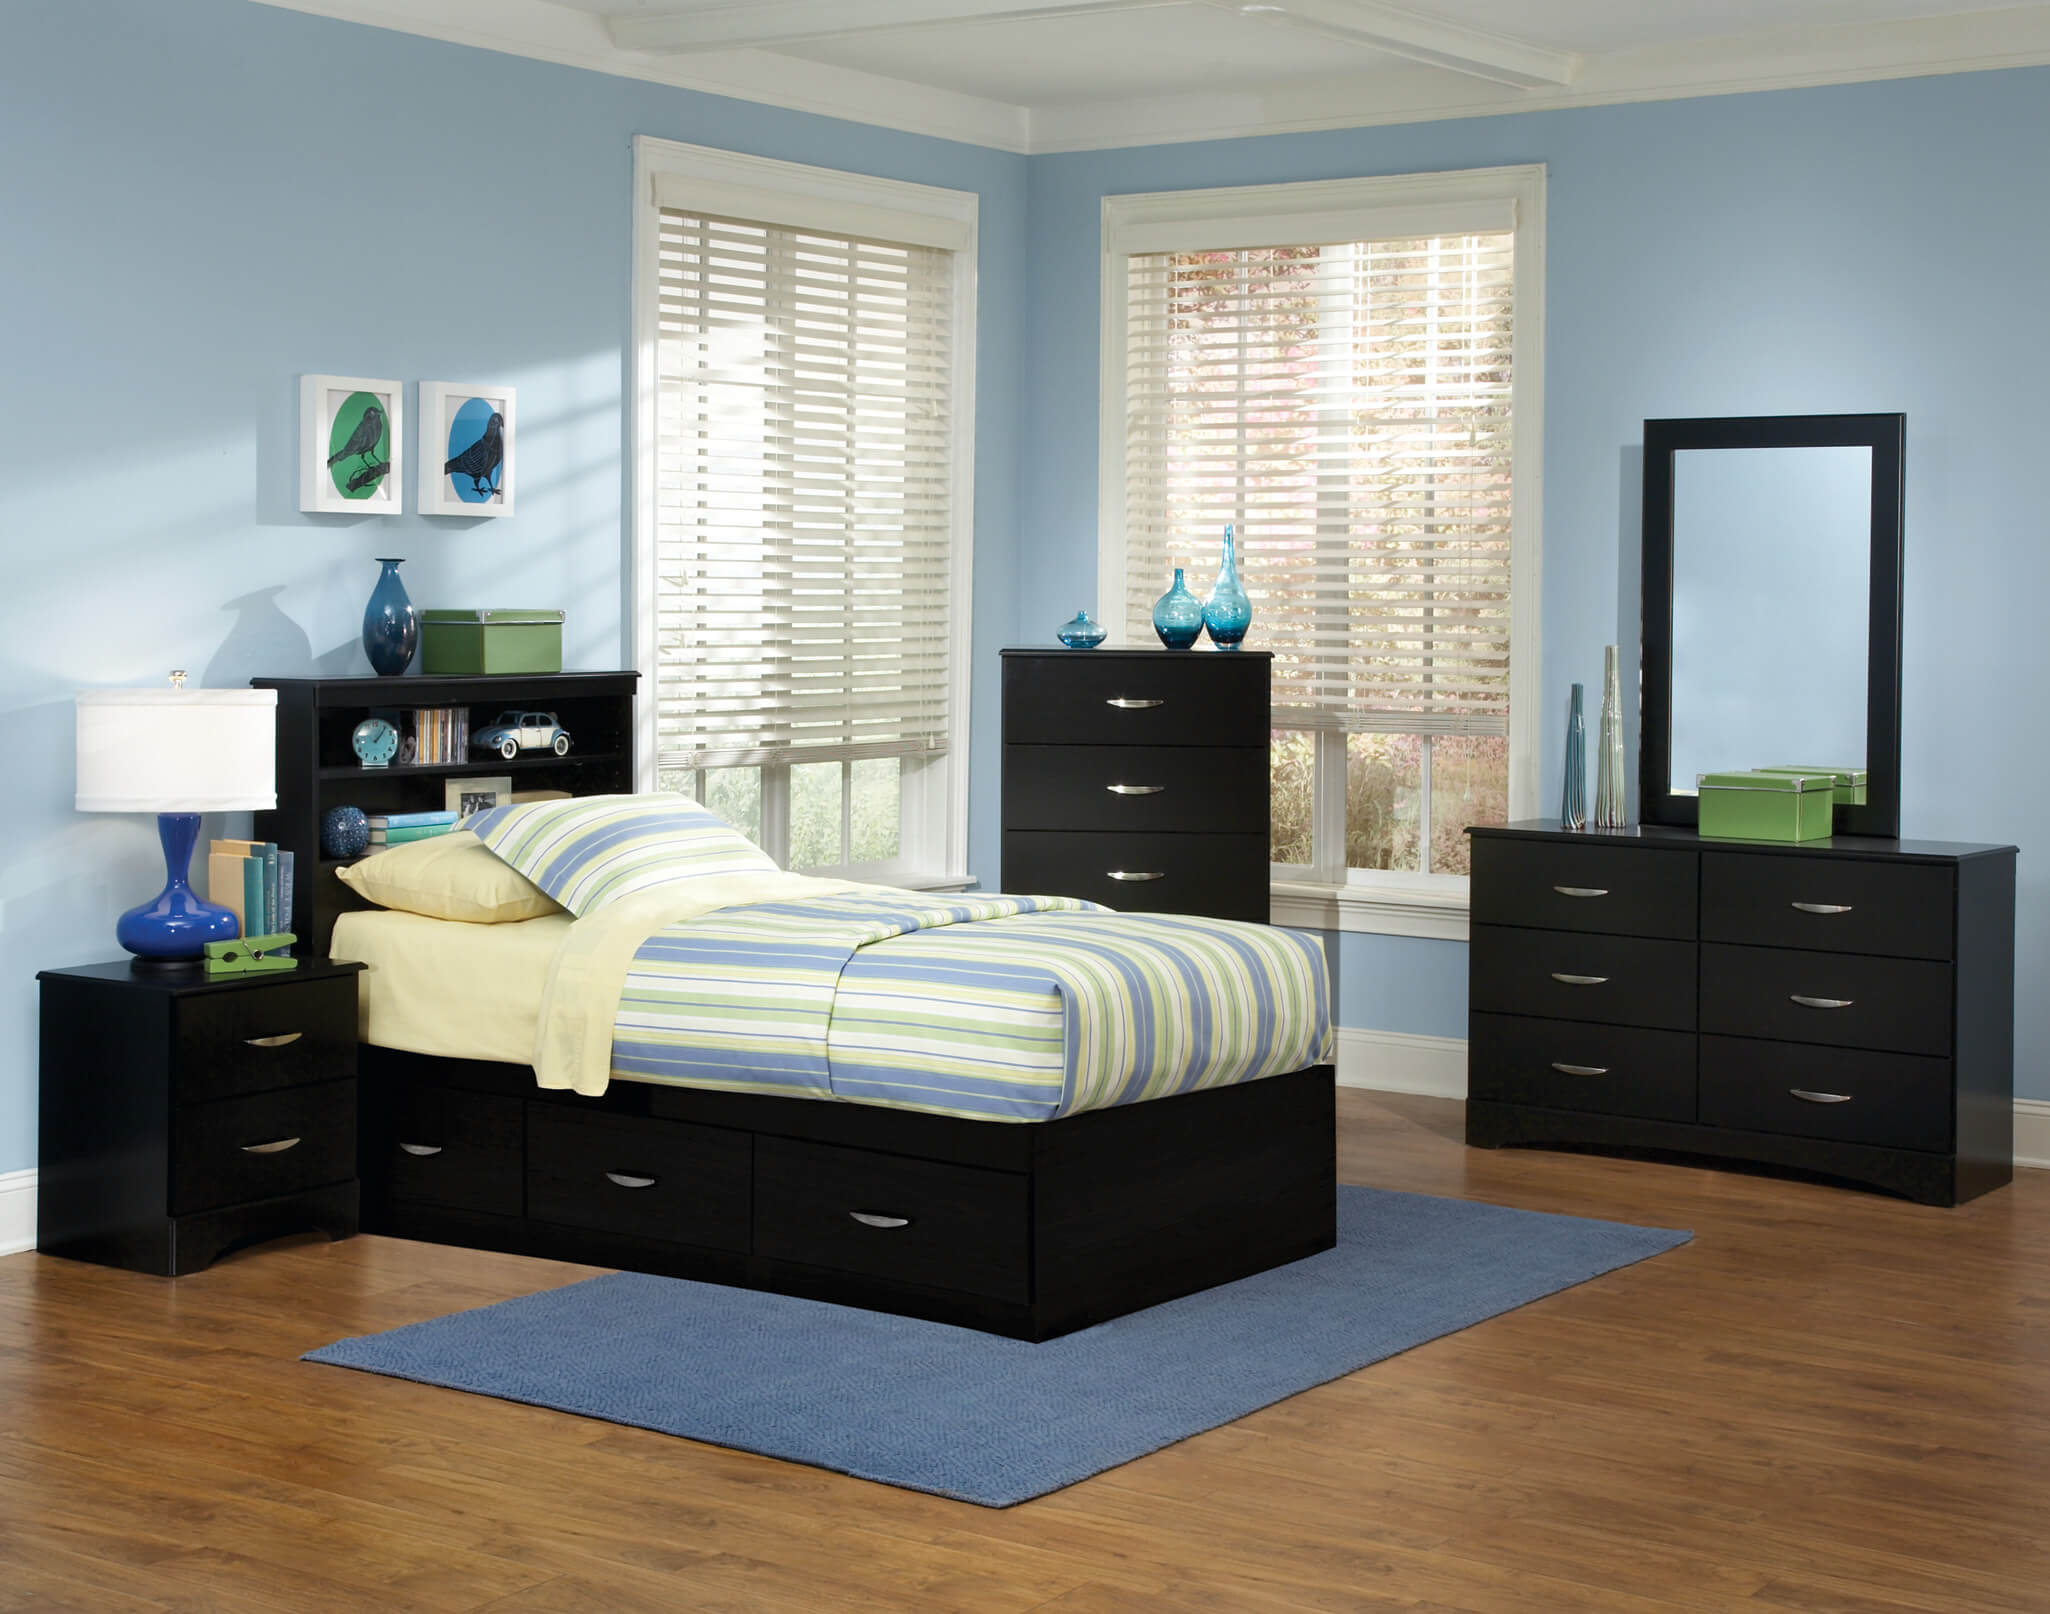 master decorating of furniture regarding ideas gallery colors black bedroom with art pic